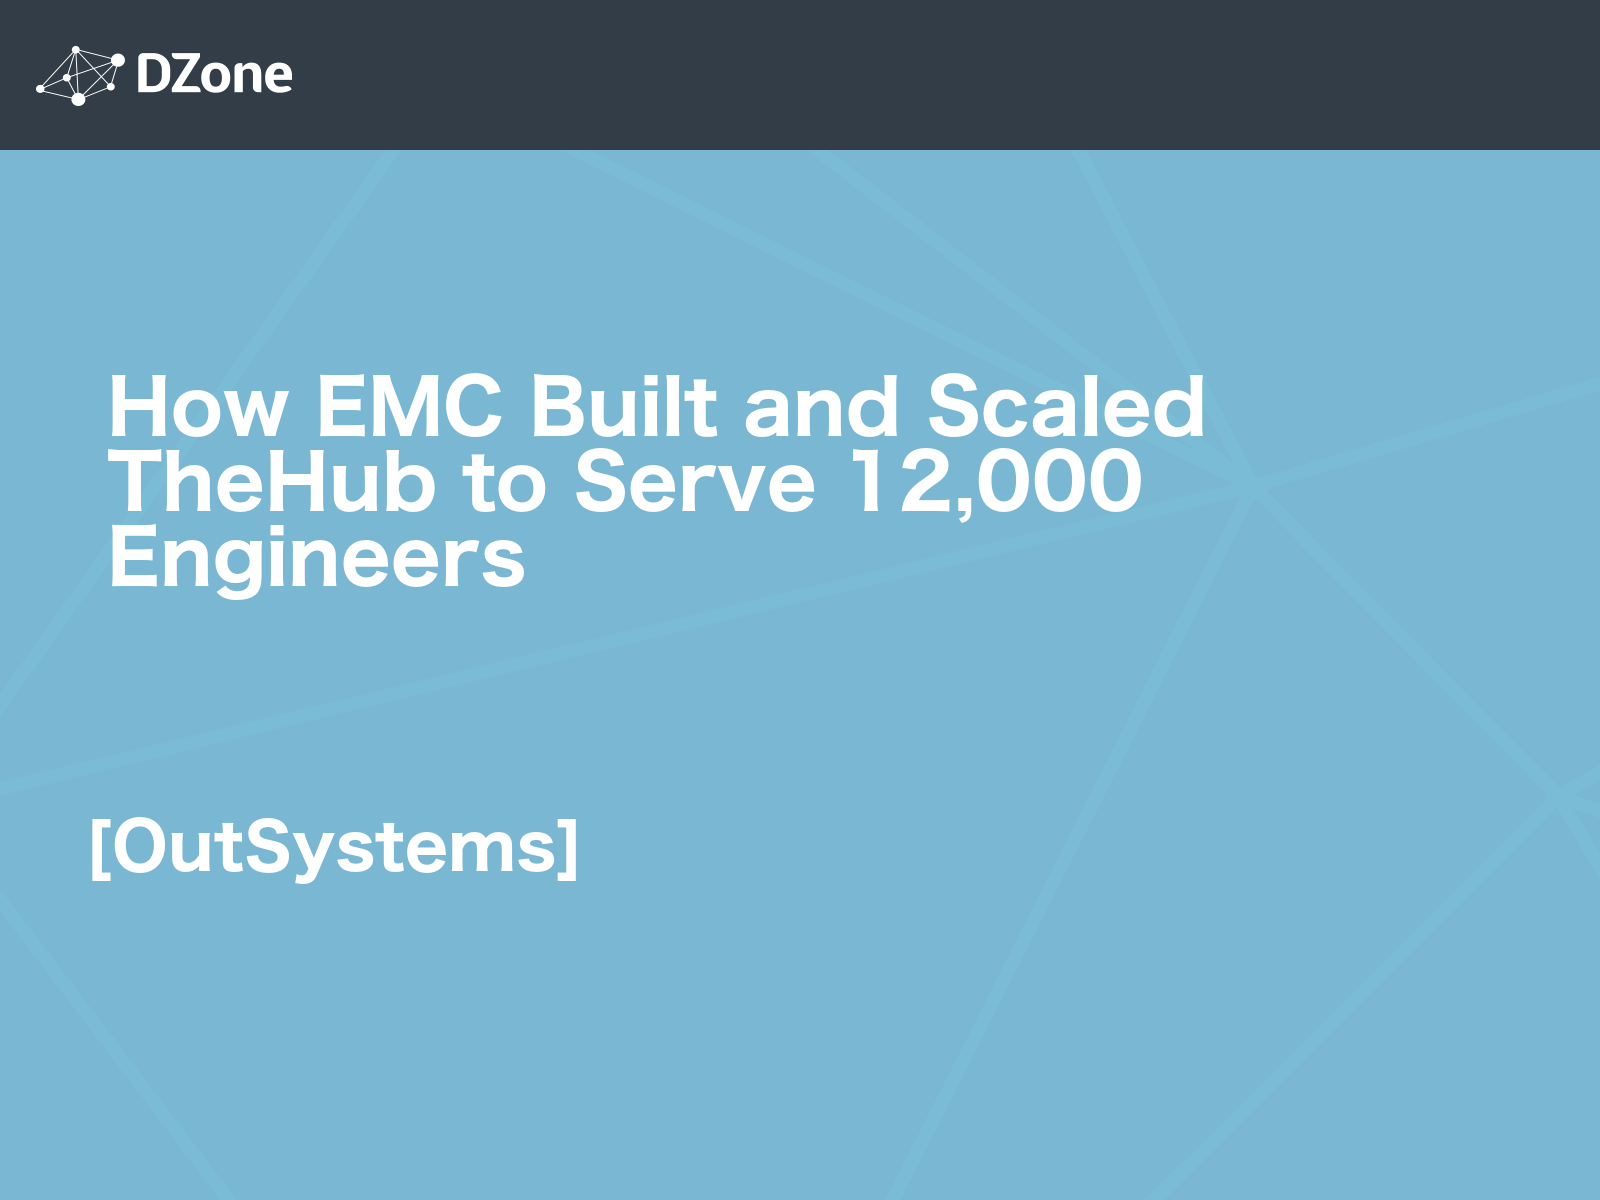 How EMC Built and Scaled TheHub to Serve 12,000 Engineers